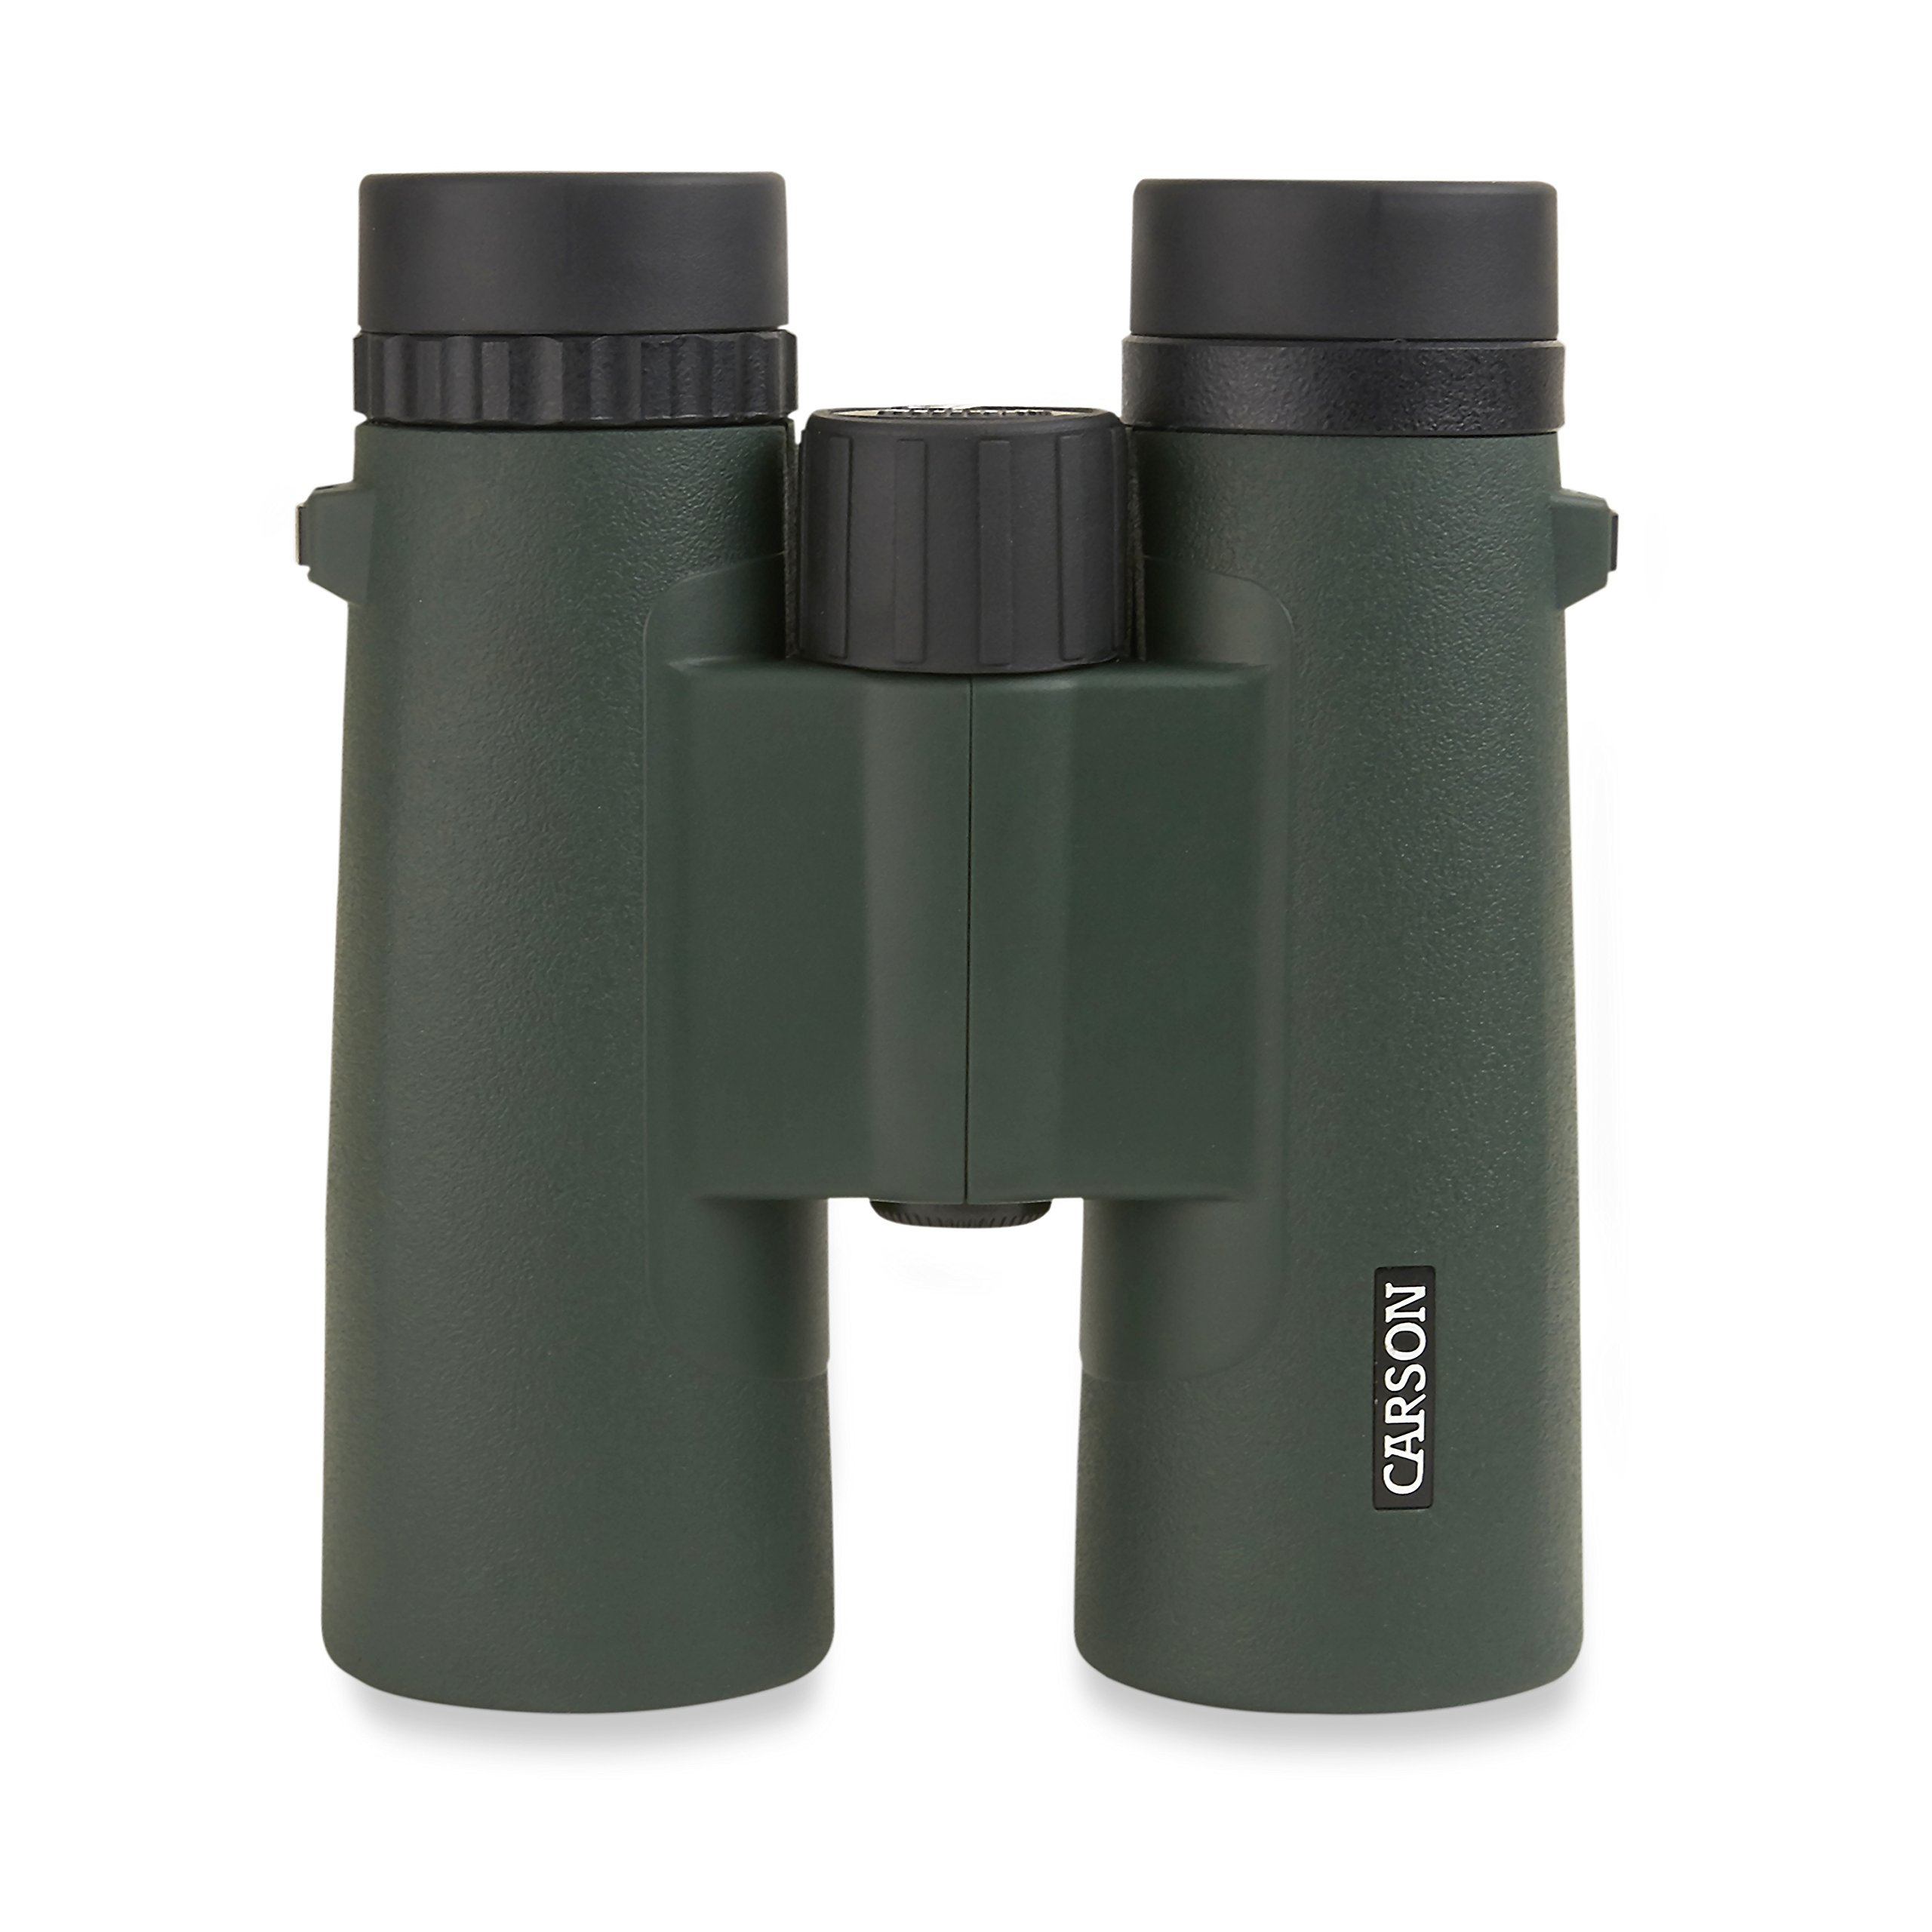 Carson JR Series 10x42mm Close-Focus Waterproof Binoculars for Bird Watching, Hunting, Sight-Seeing, Surveillance, Concerts, Sporting Events, Safaris, Camping, Travel and Outdoor Adventures (JR-042)